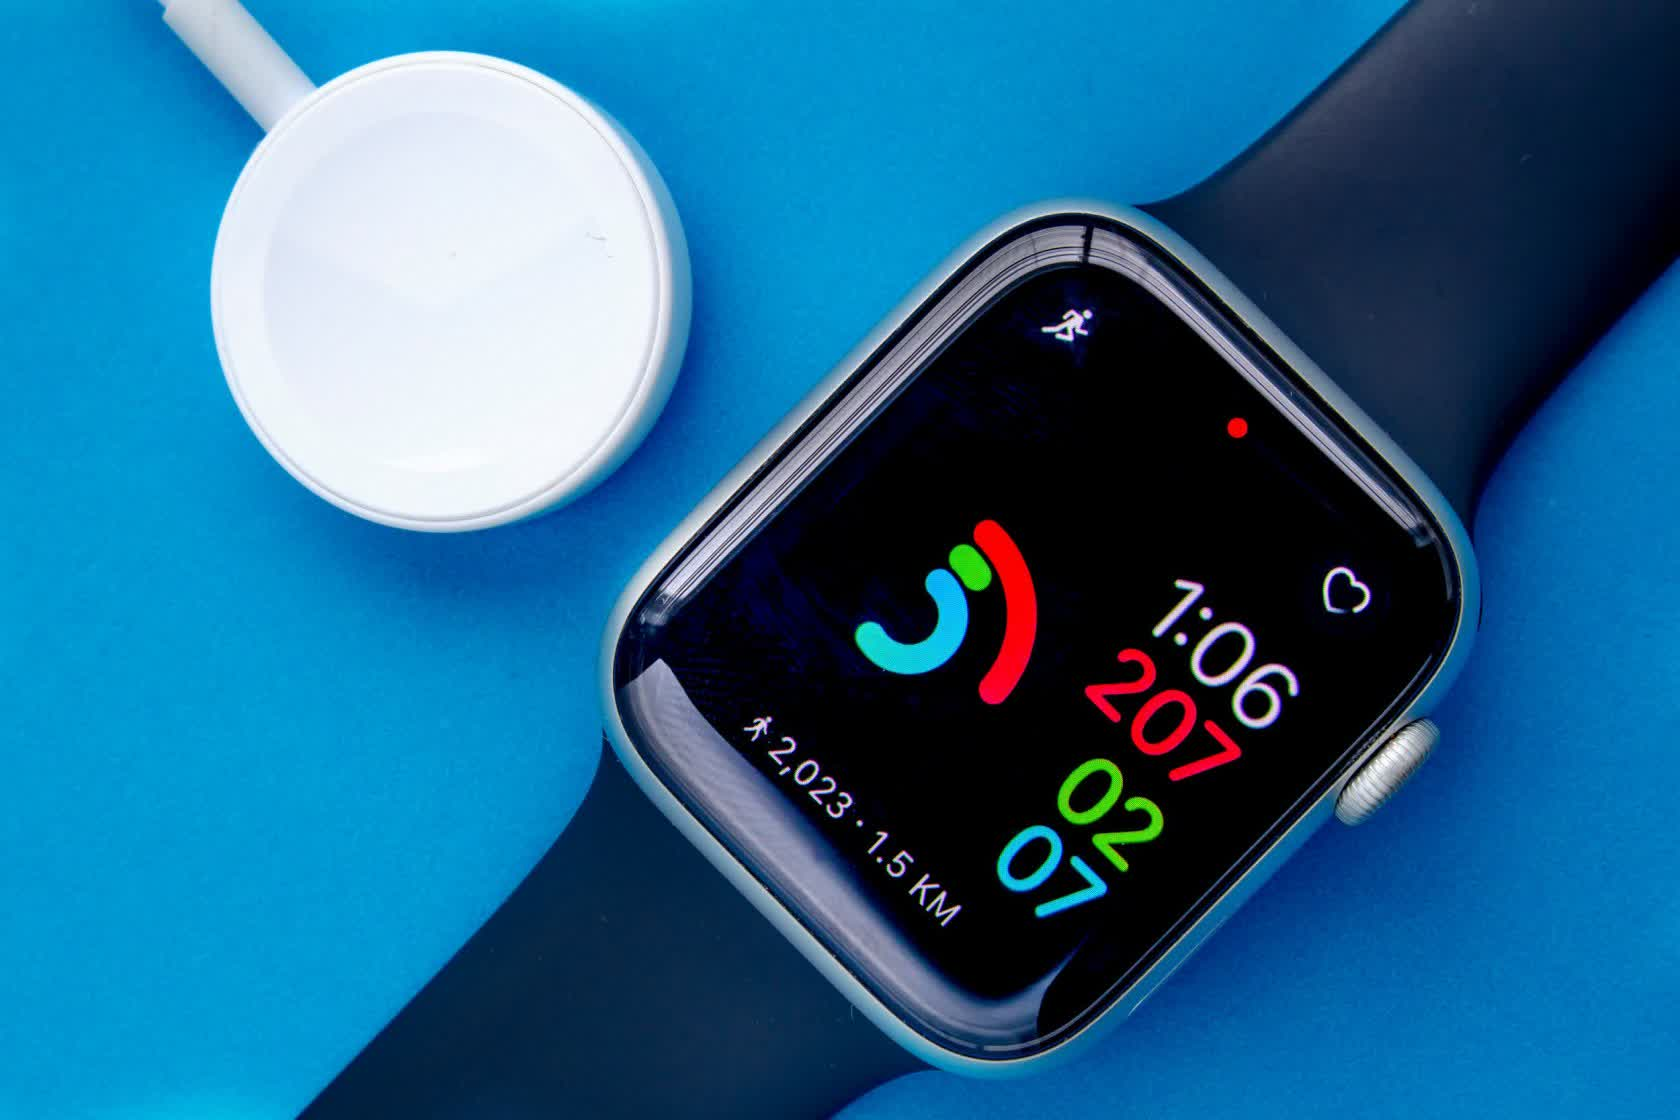 Unsecured database exposed over 60 million fitness wearable devices